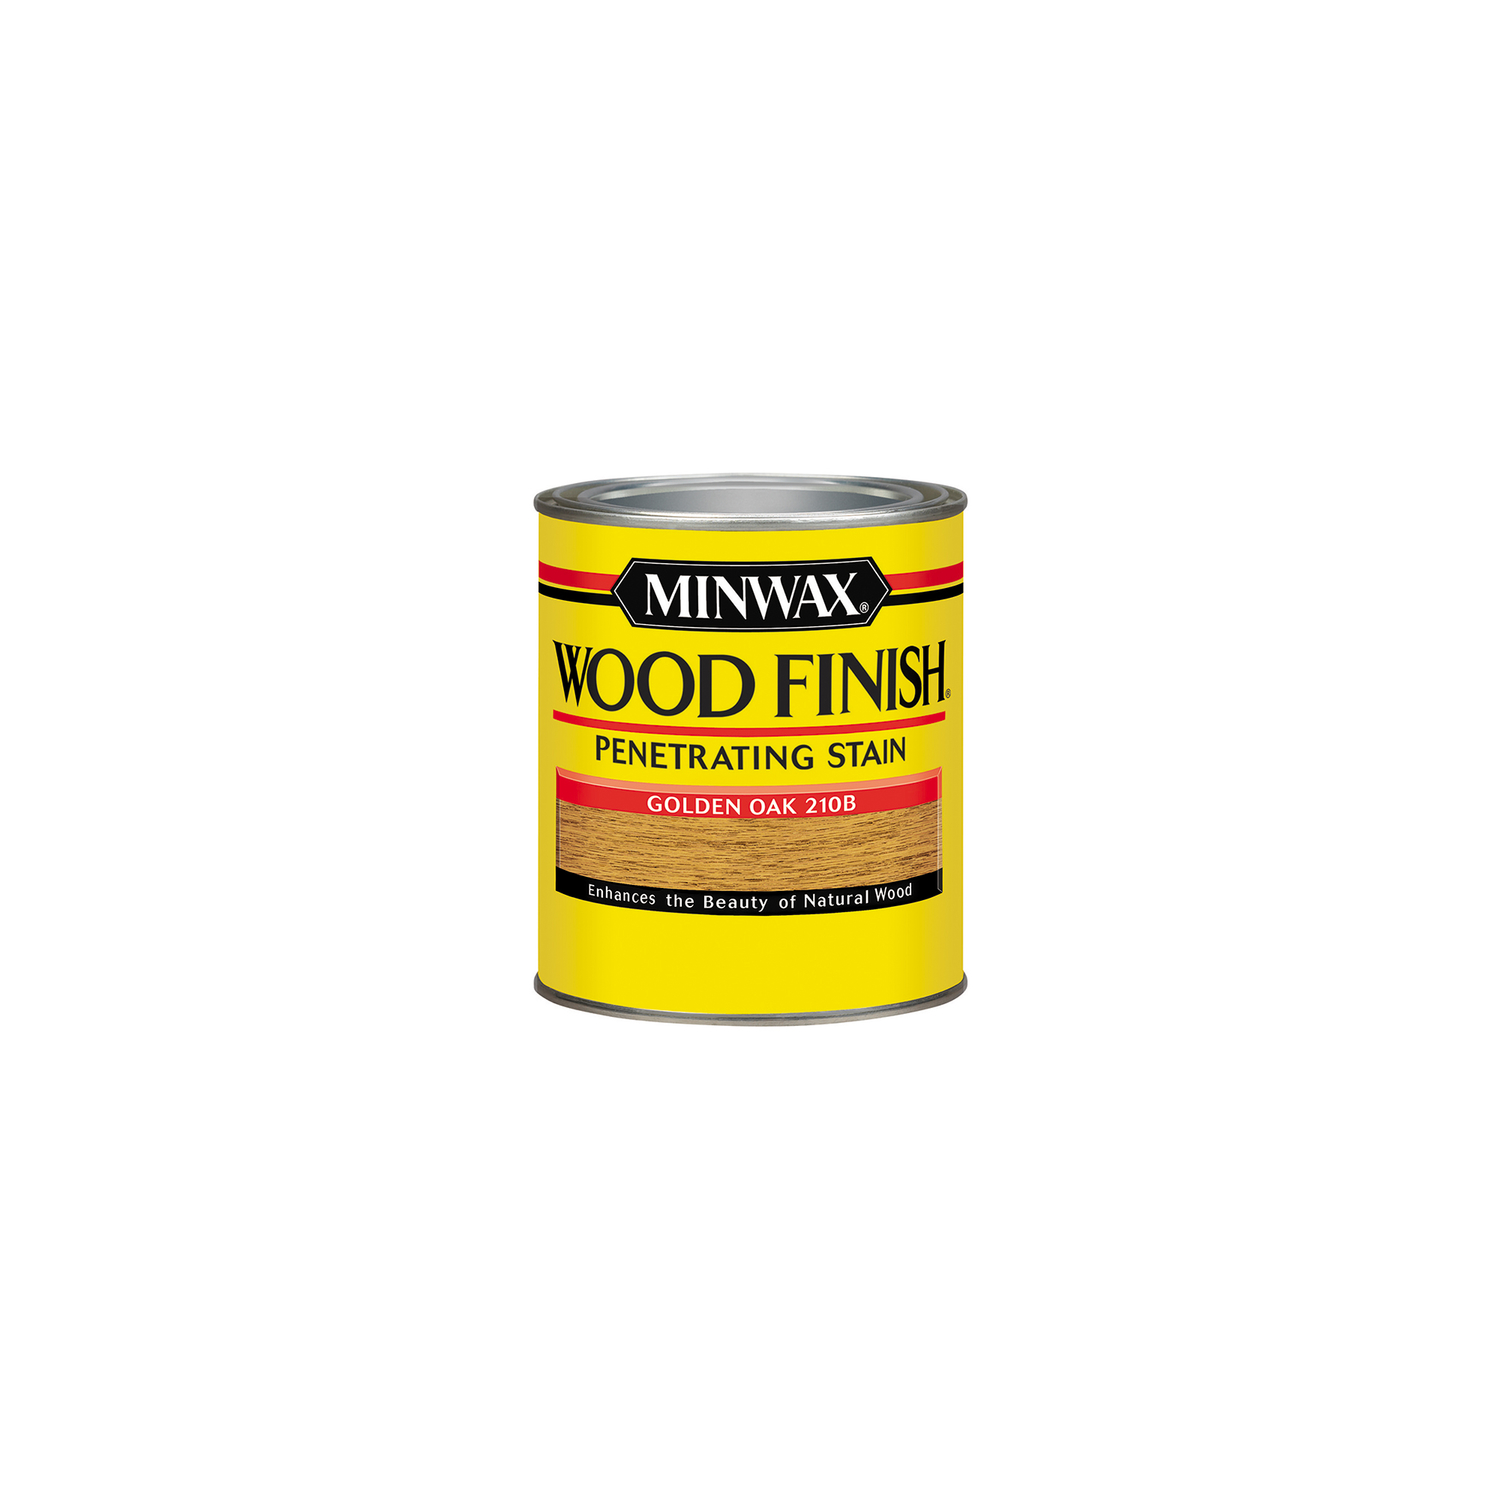 Minwax  Wood Finish  Semi-Transparent  Golden Oak  Oil-Based  Oil  Wood Stain  0.5 pt.